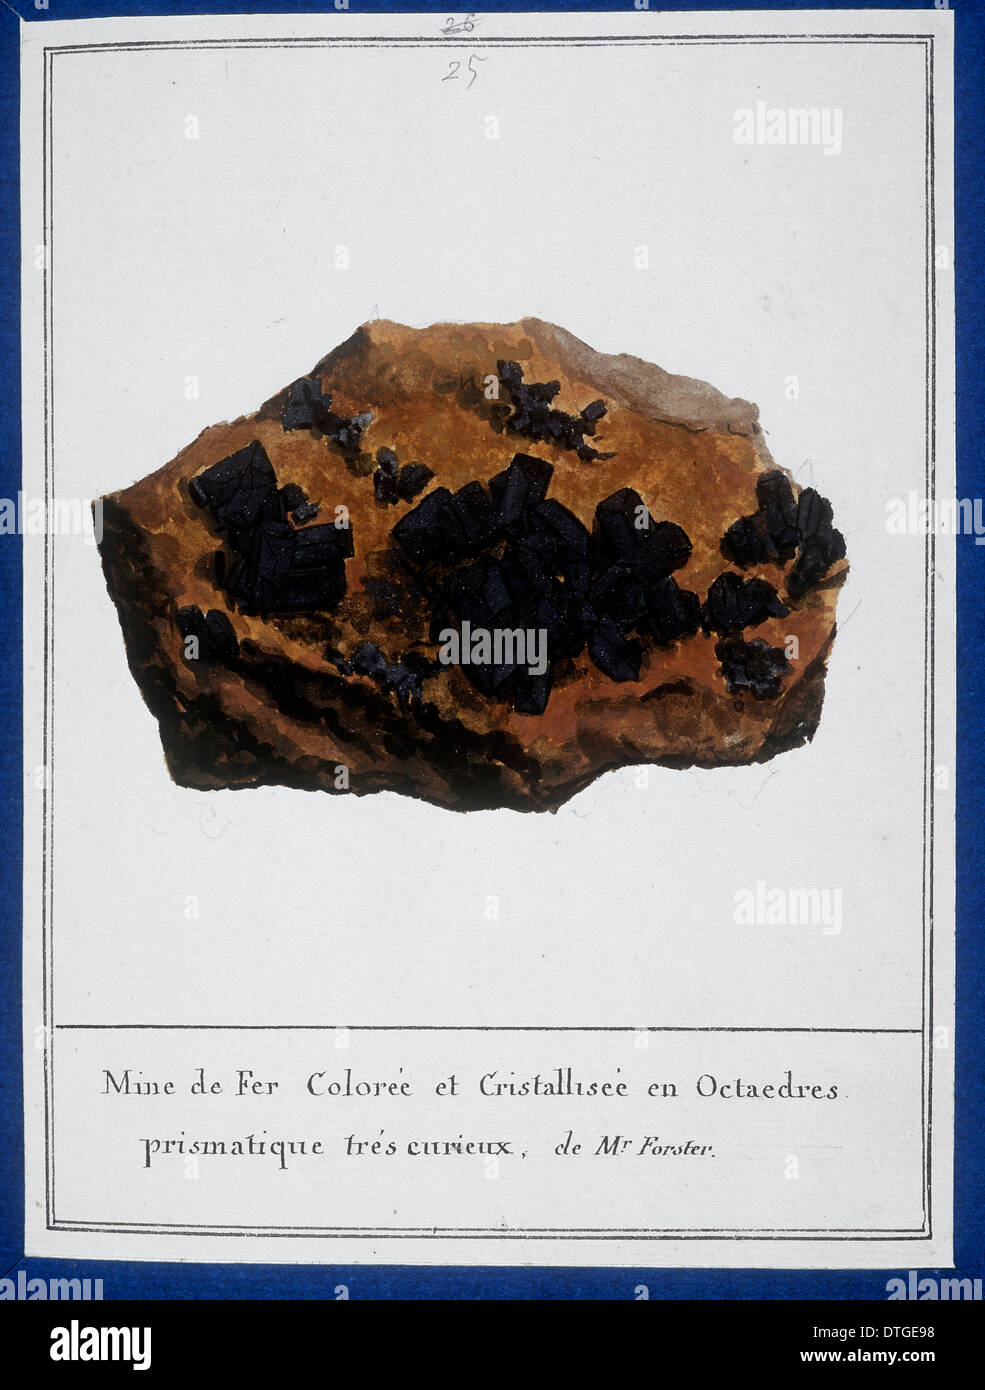 Plate 25 from Mineralogie by Swebach Desfontaines - Stock Image